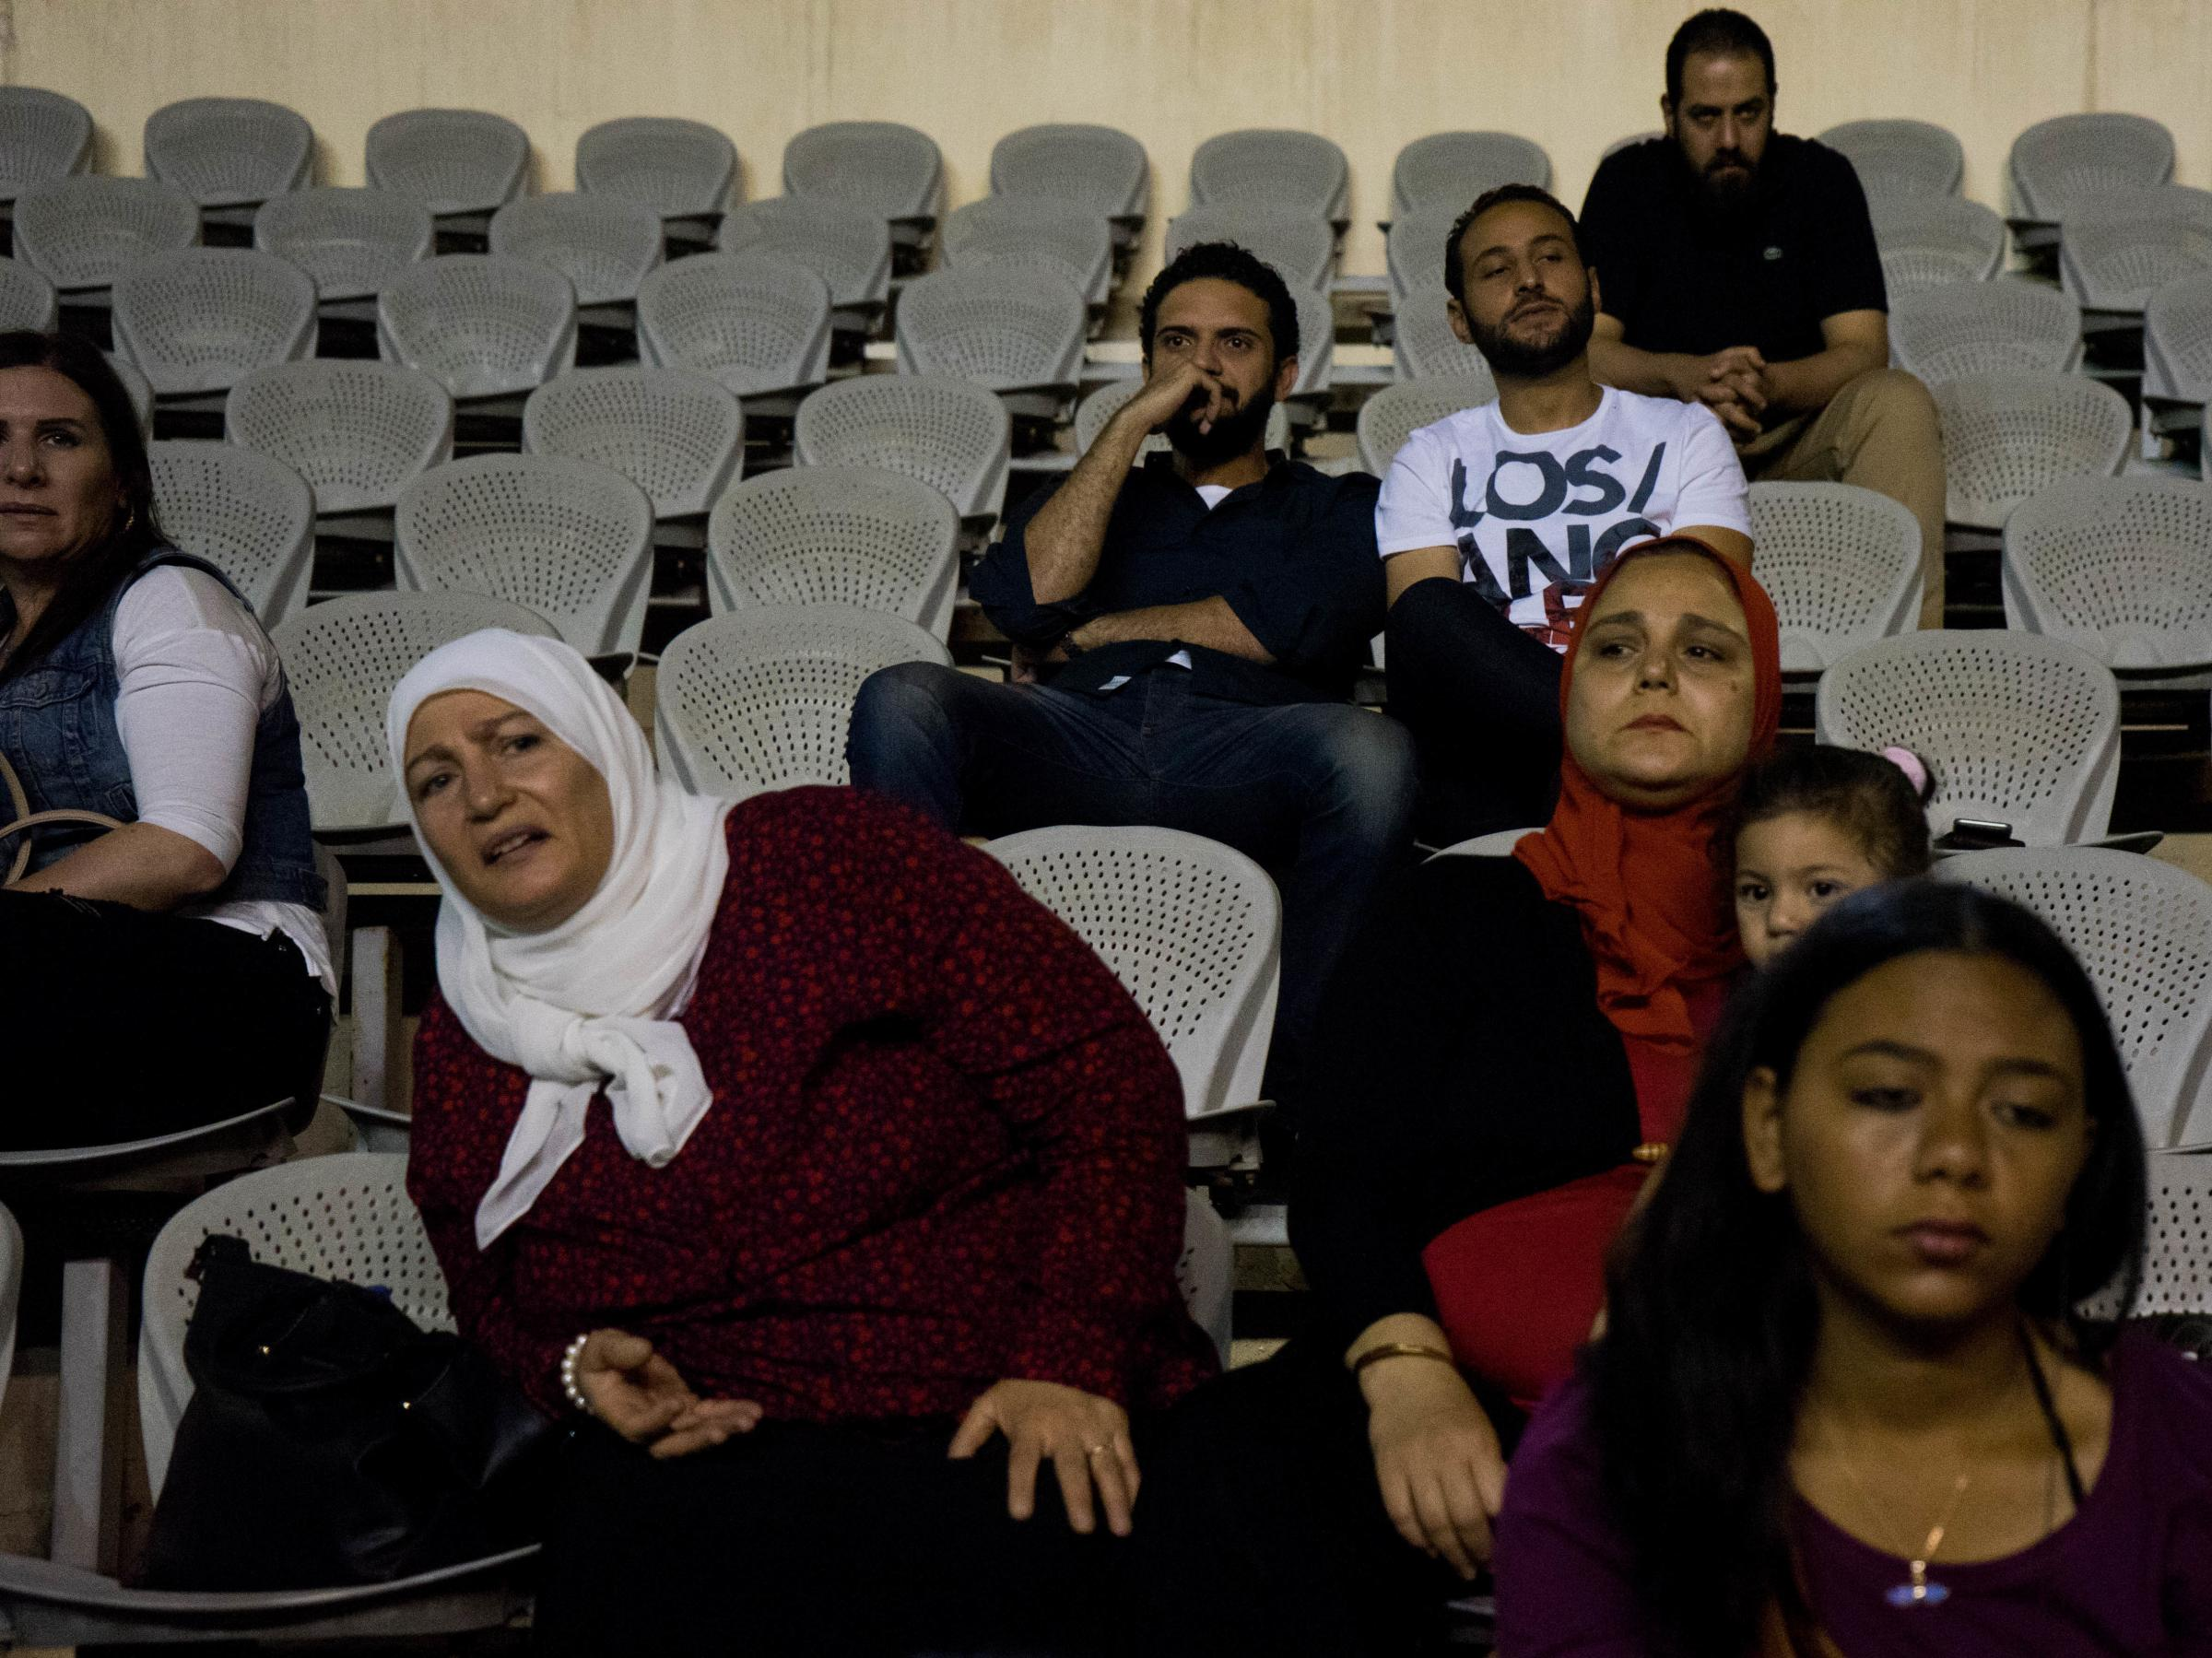 Roller skates in egypt